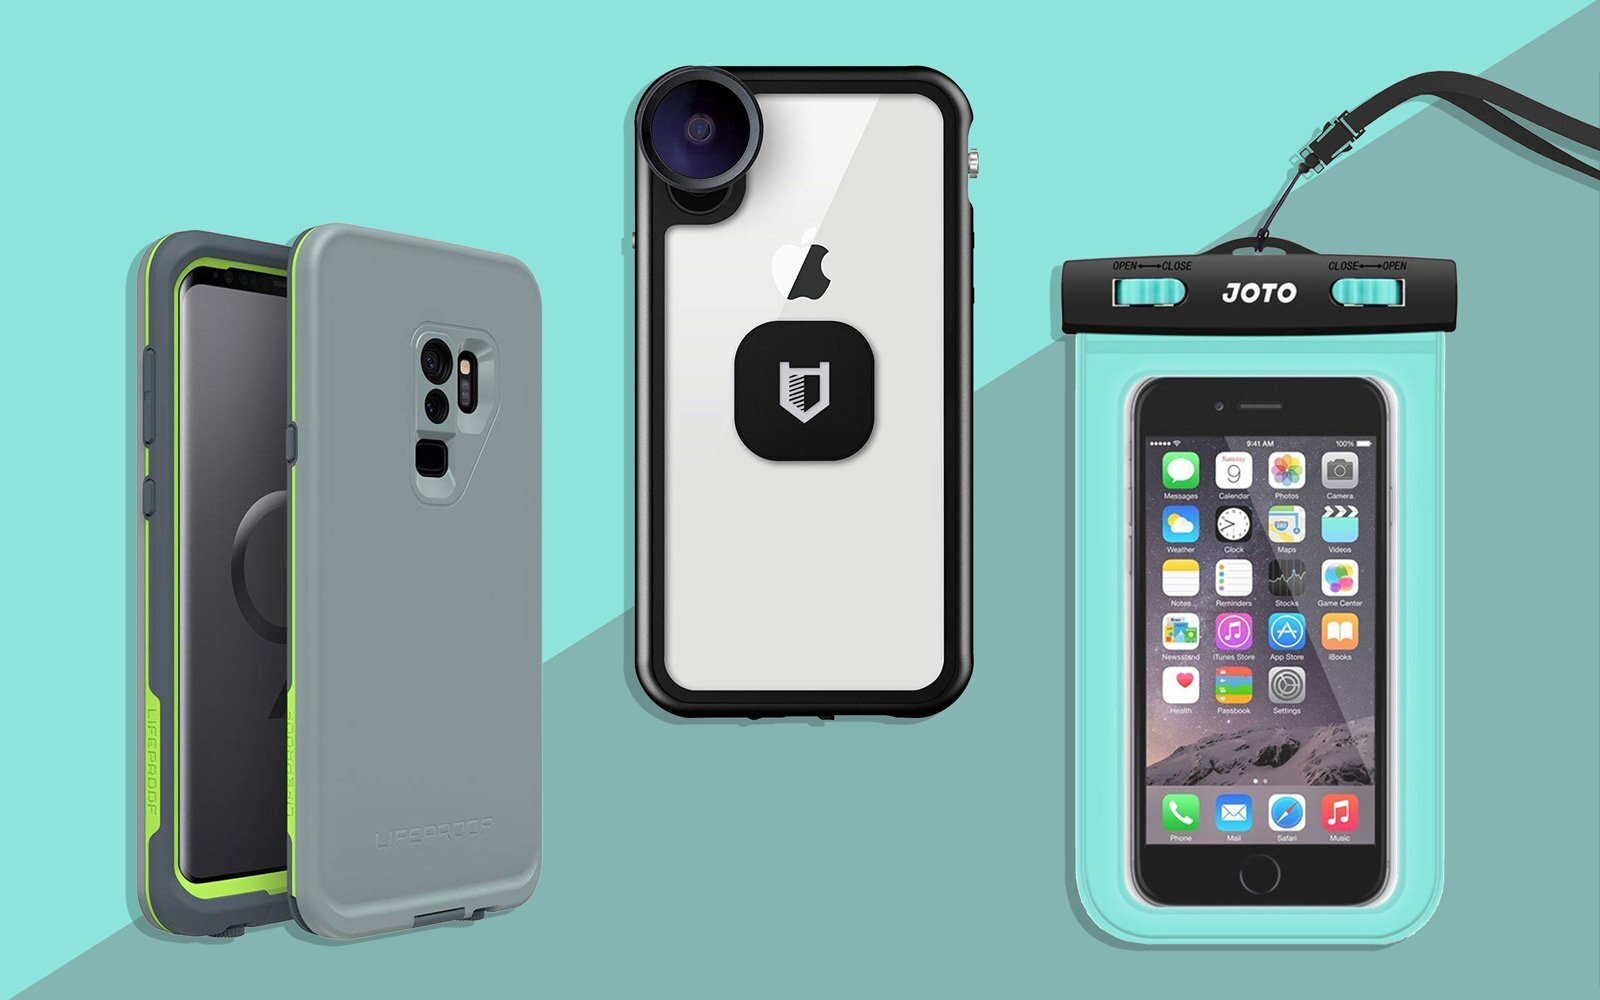 f5808b655d2cb1 The Best Waterproof Phone Cases in 2019 | Travel + Leisure